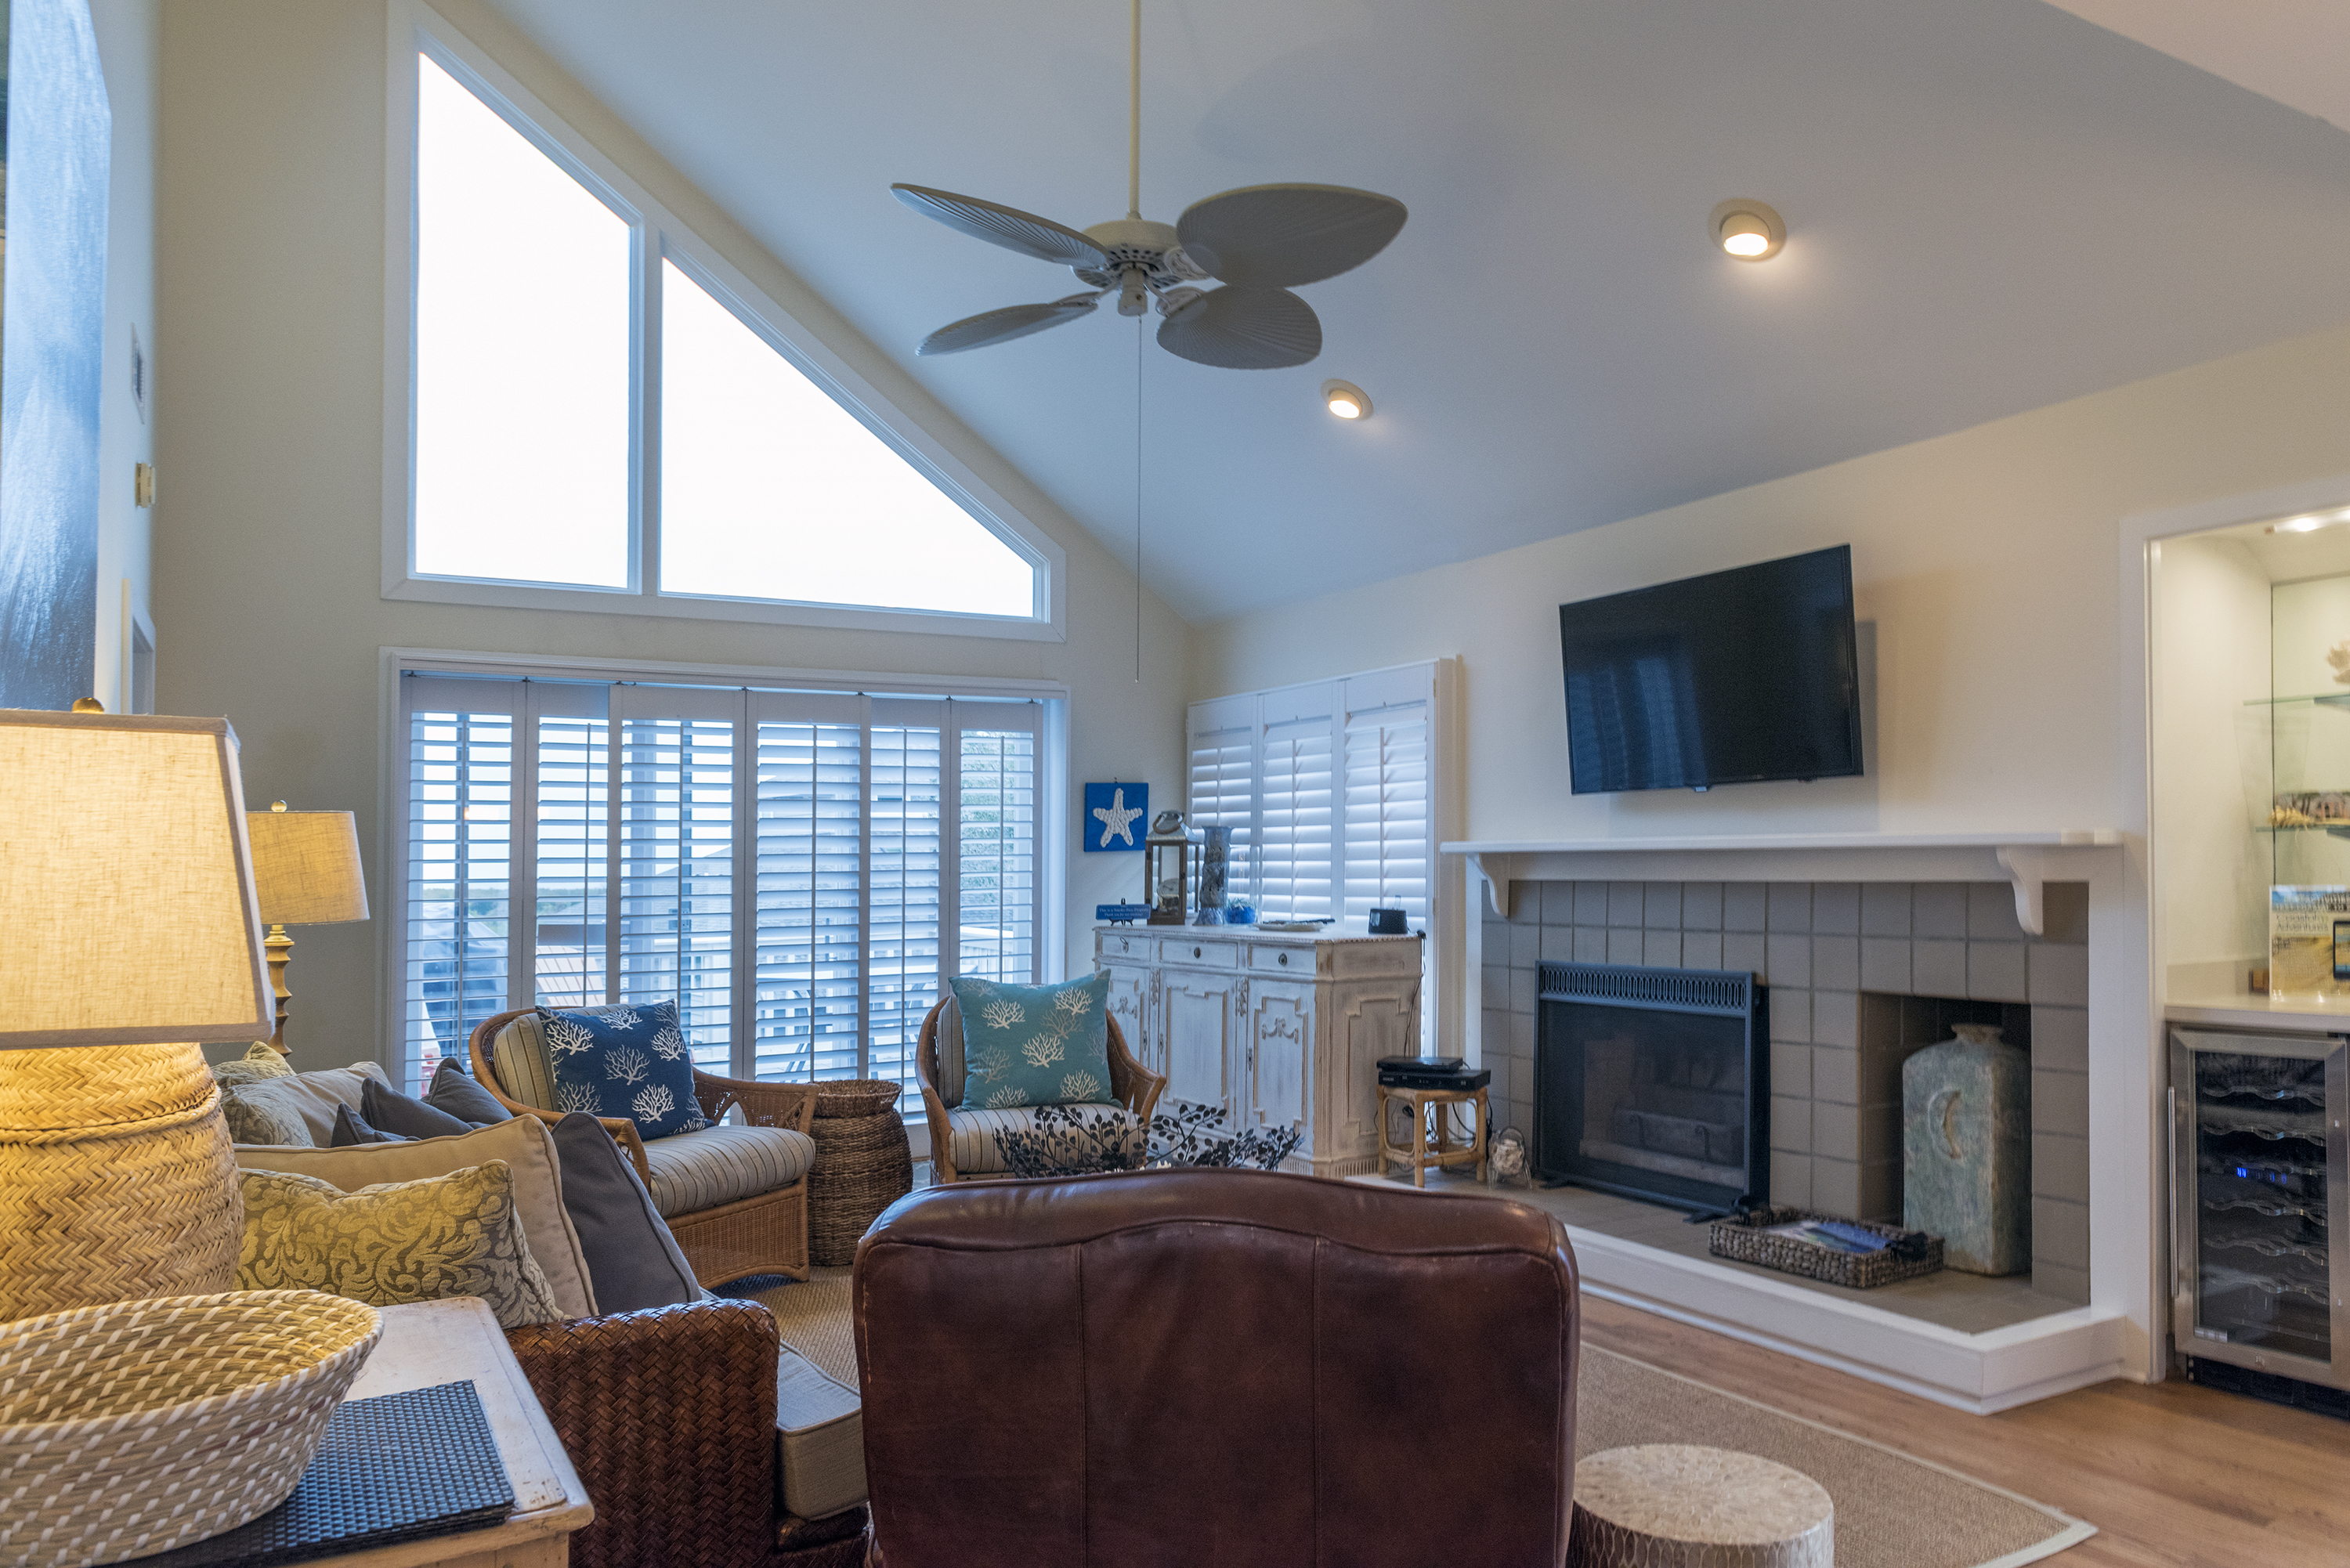 The great room has a fireplace, large HDTV flat screen, wine bar/fridge, and access to the deck with beautiful ocean views!